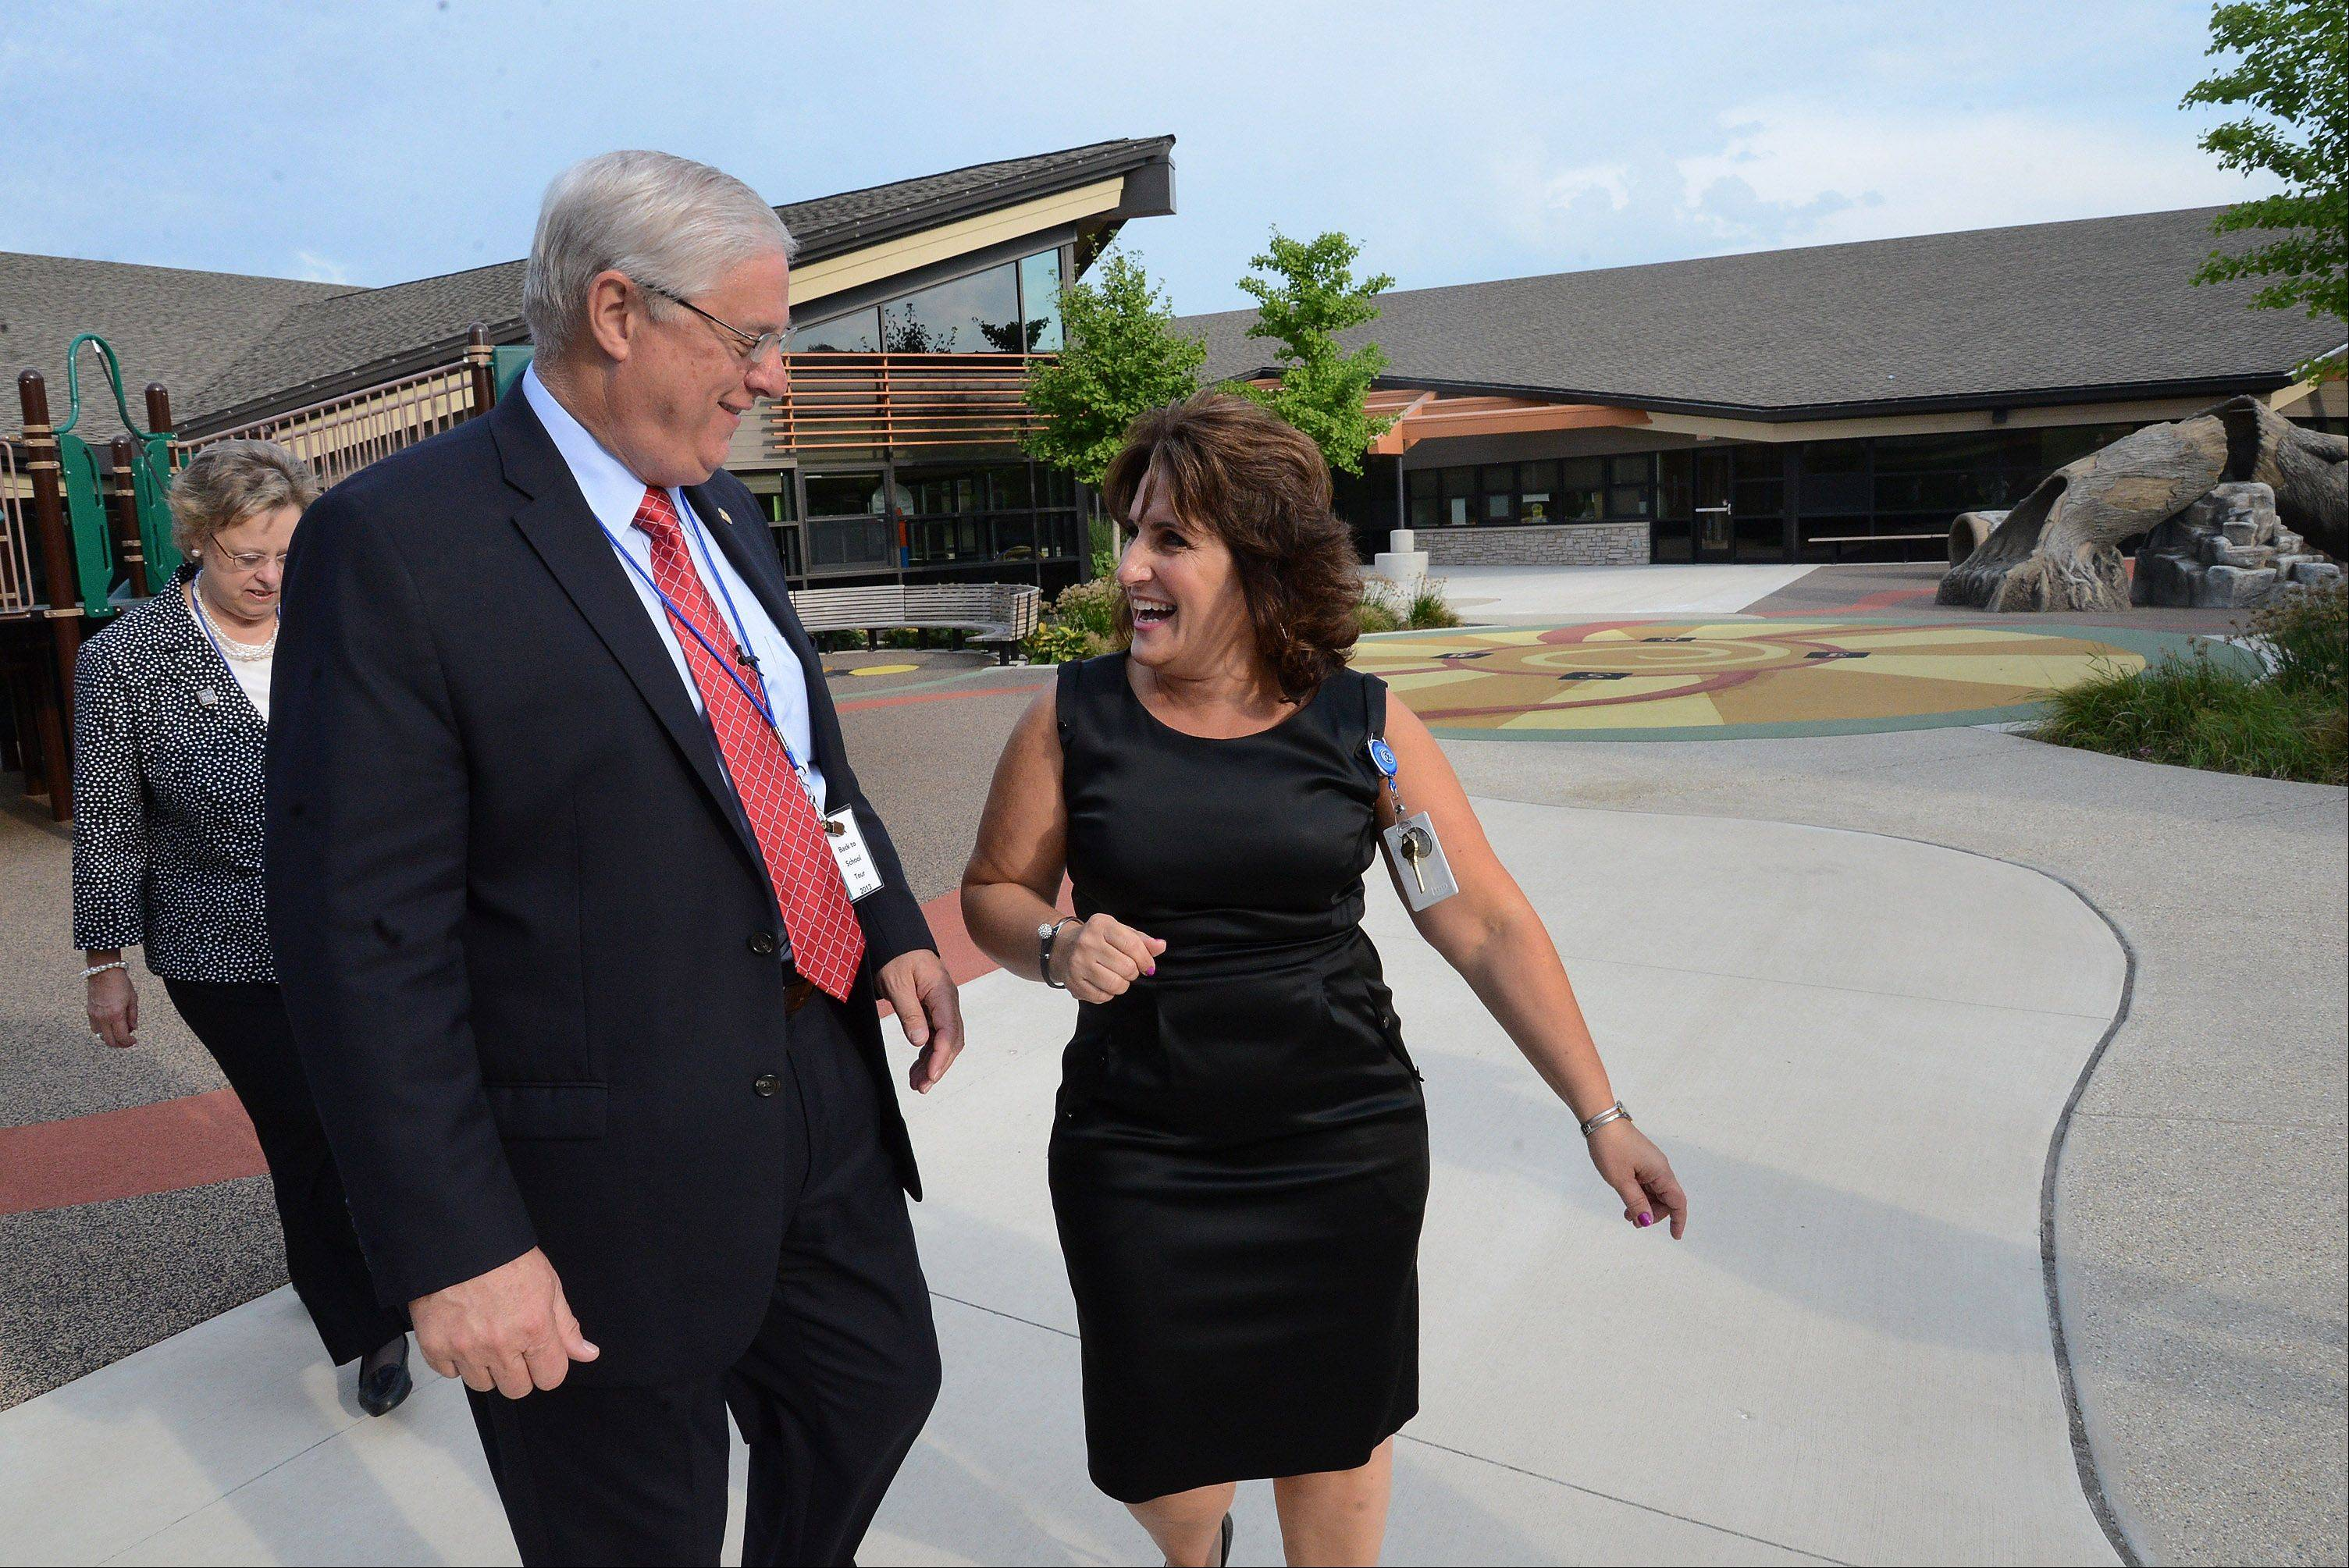 Margie Beniaris, director of Early Learning Center, gives Dennis Van Roekel, president of the National Education Association, a tour of the outside of the Early Learning Childhood Center at Forest Elementary School in Des Plaines.